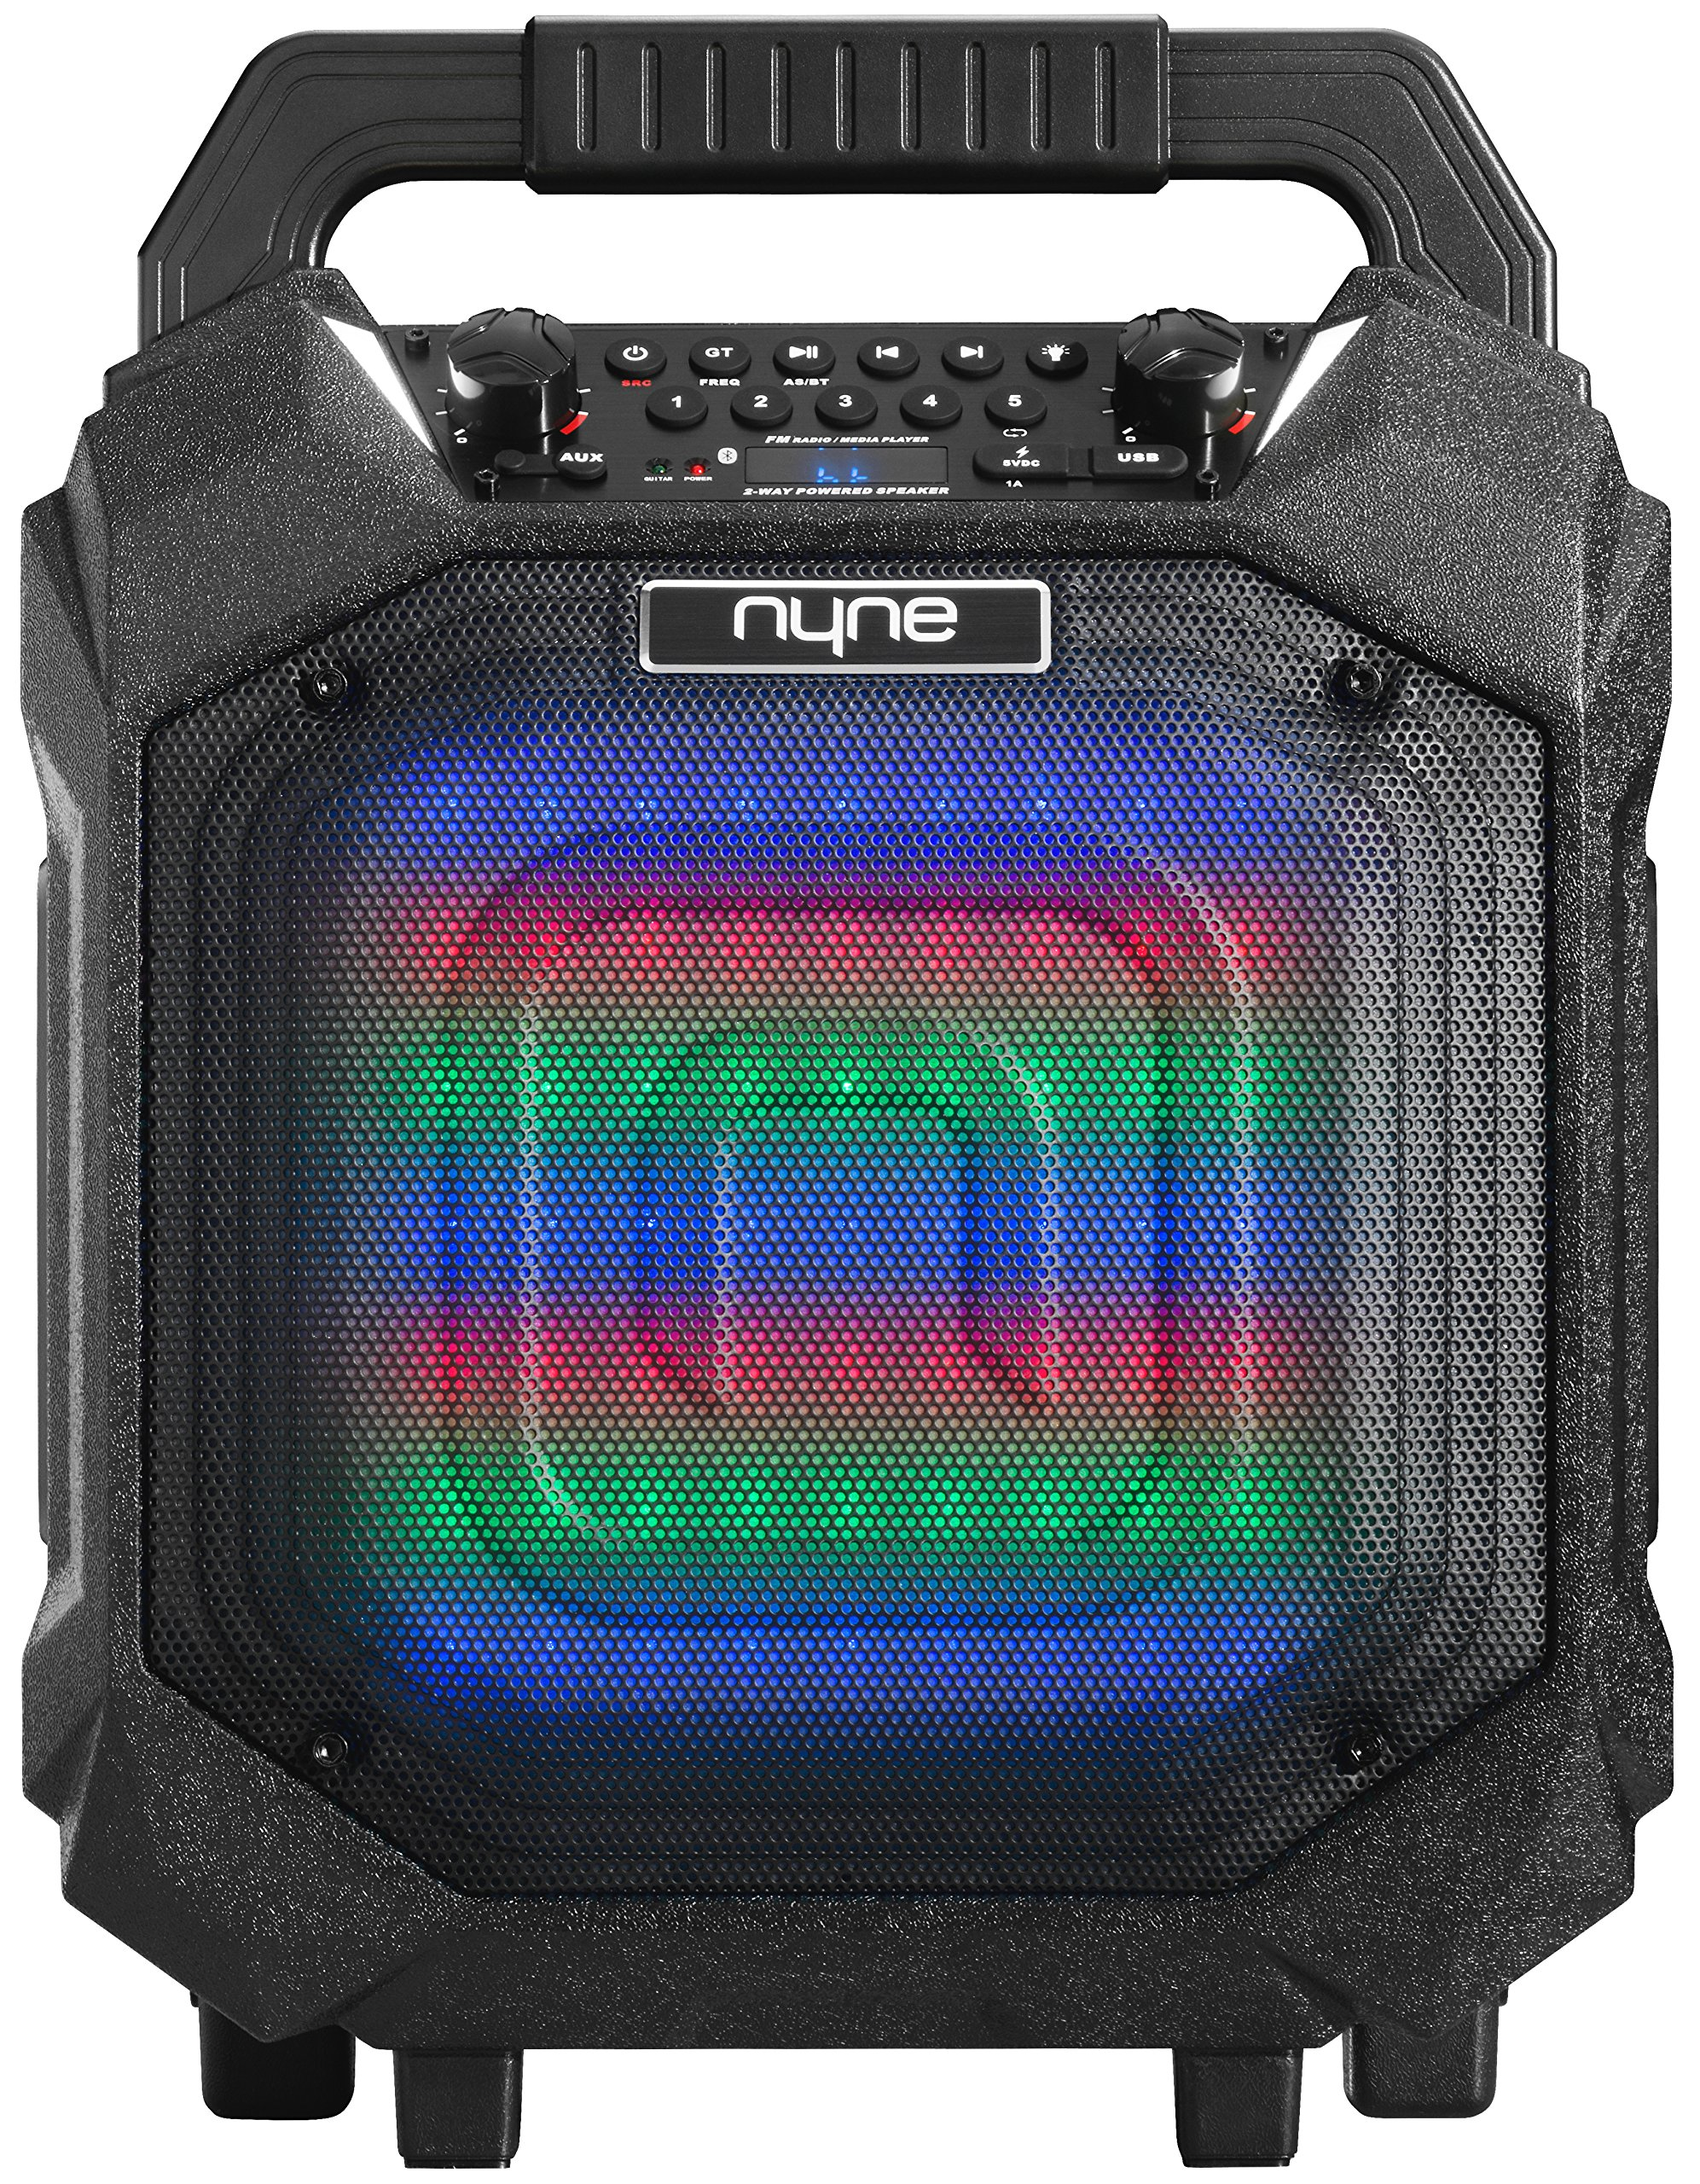 Nyne Performer + Portable Bluetooth Speaker Featuring FM Tuner, Wired Microphone + Guitar Input, LED Lights, Retractable Handle and Wheels